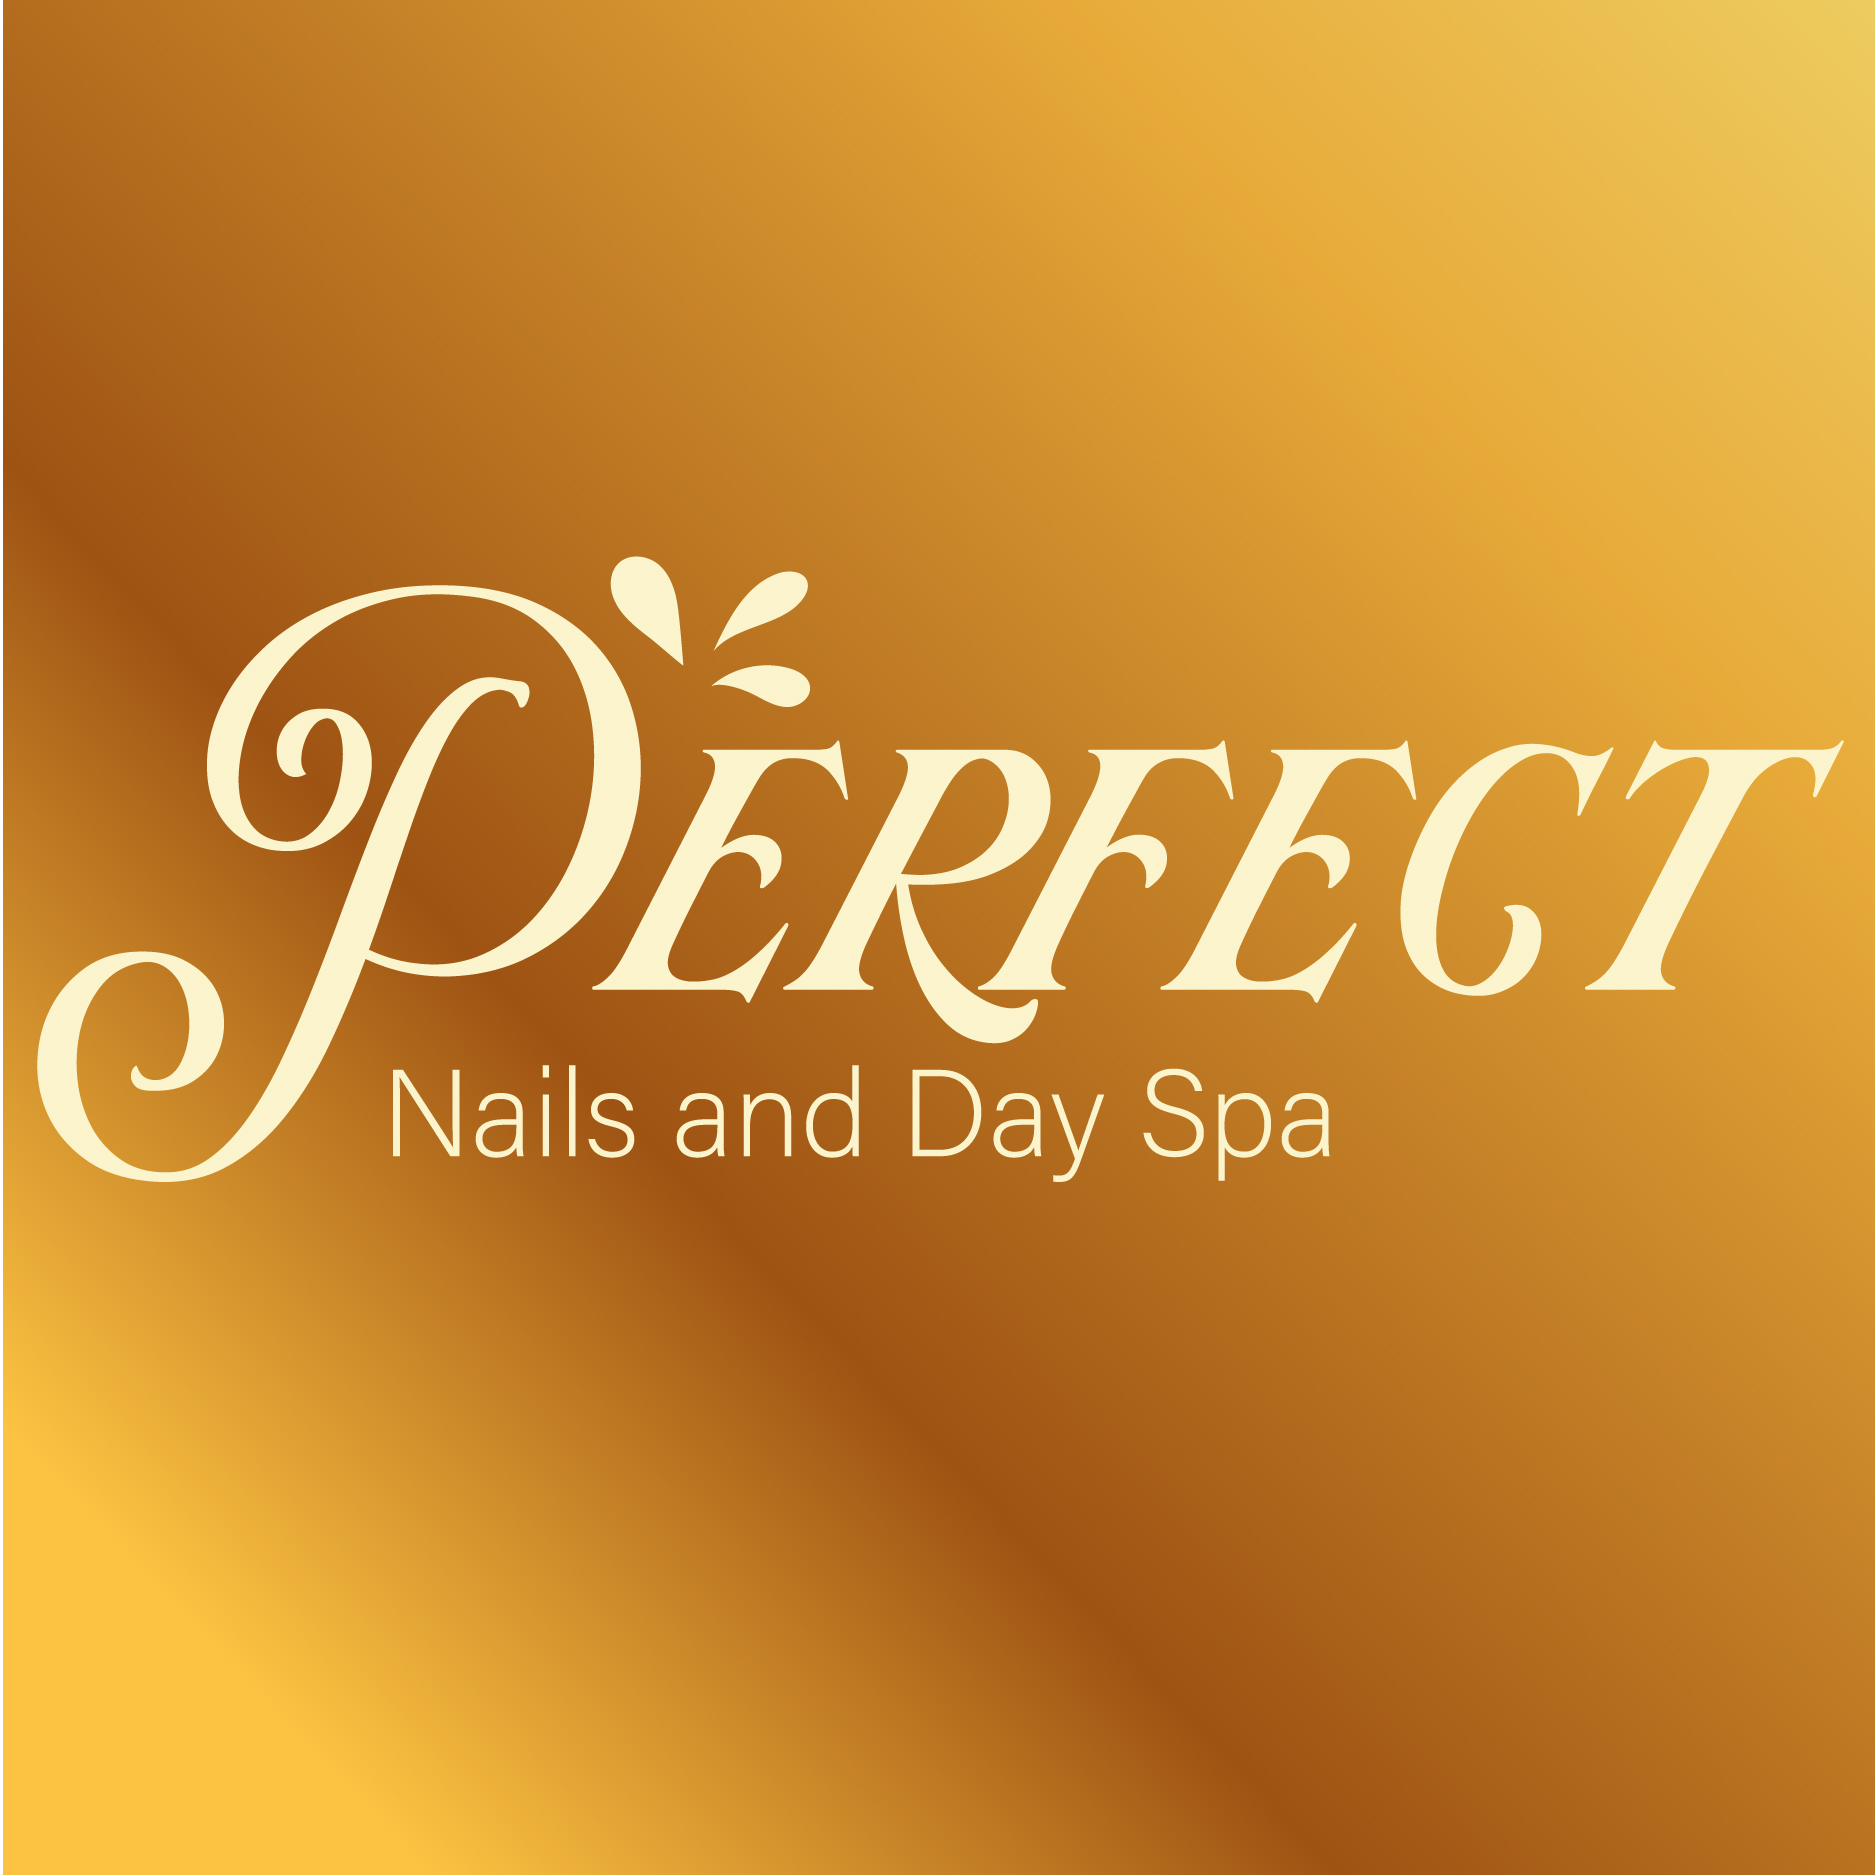 PERFECT NAILS AND DAY SPA